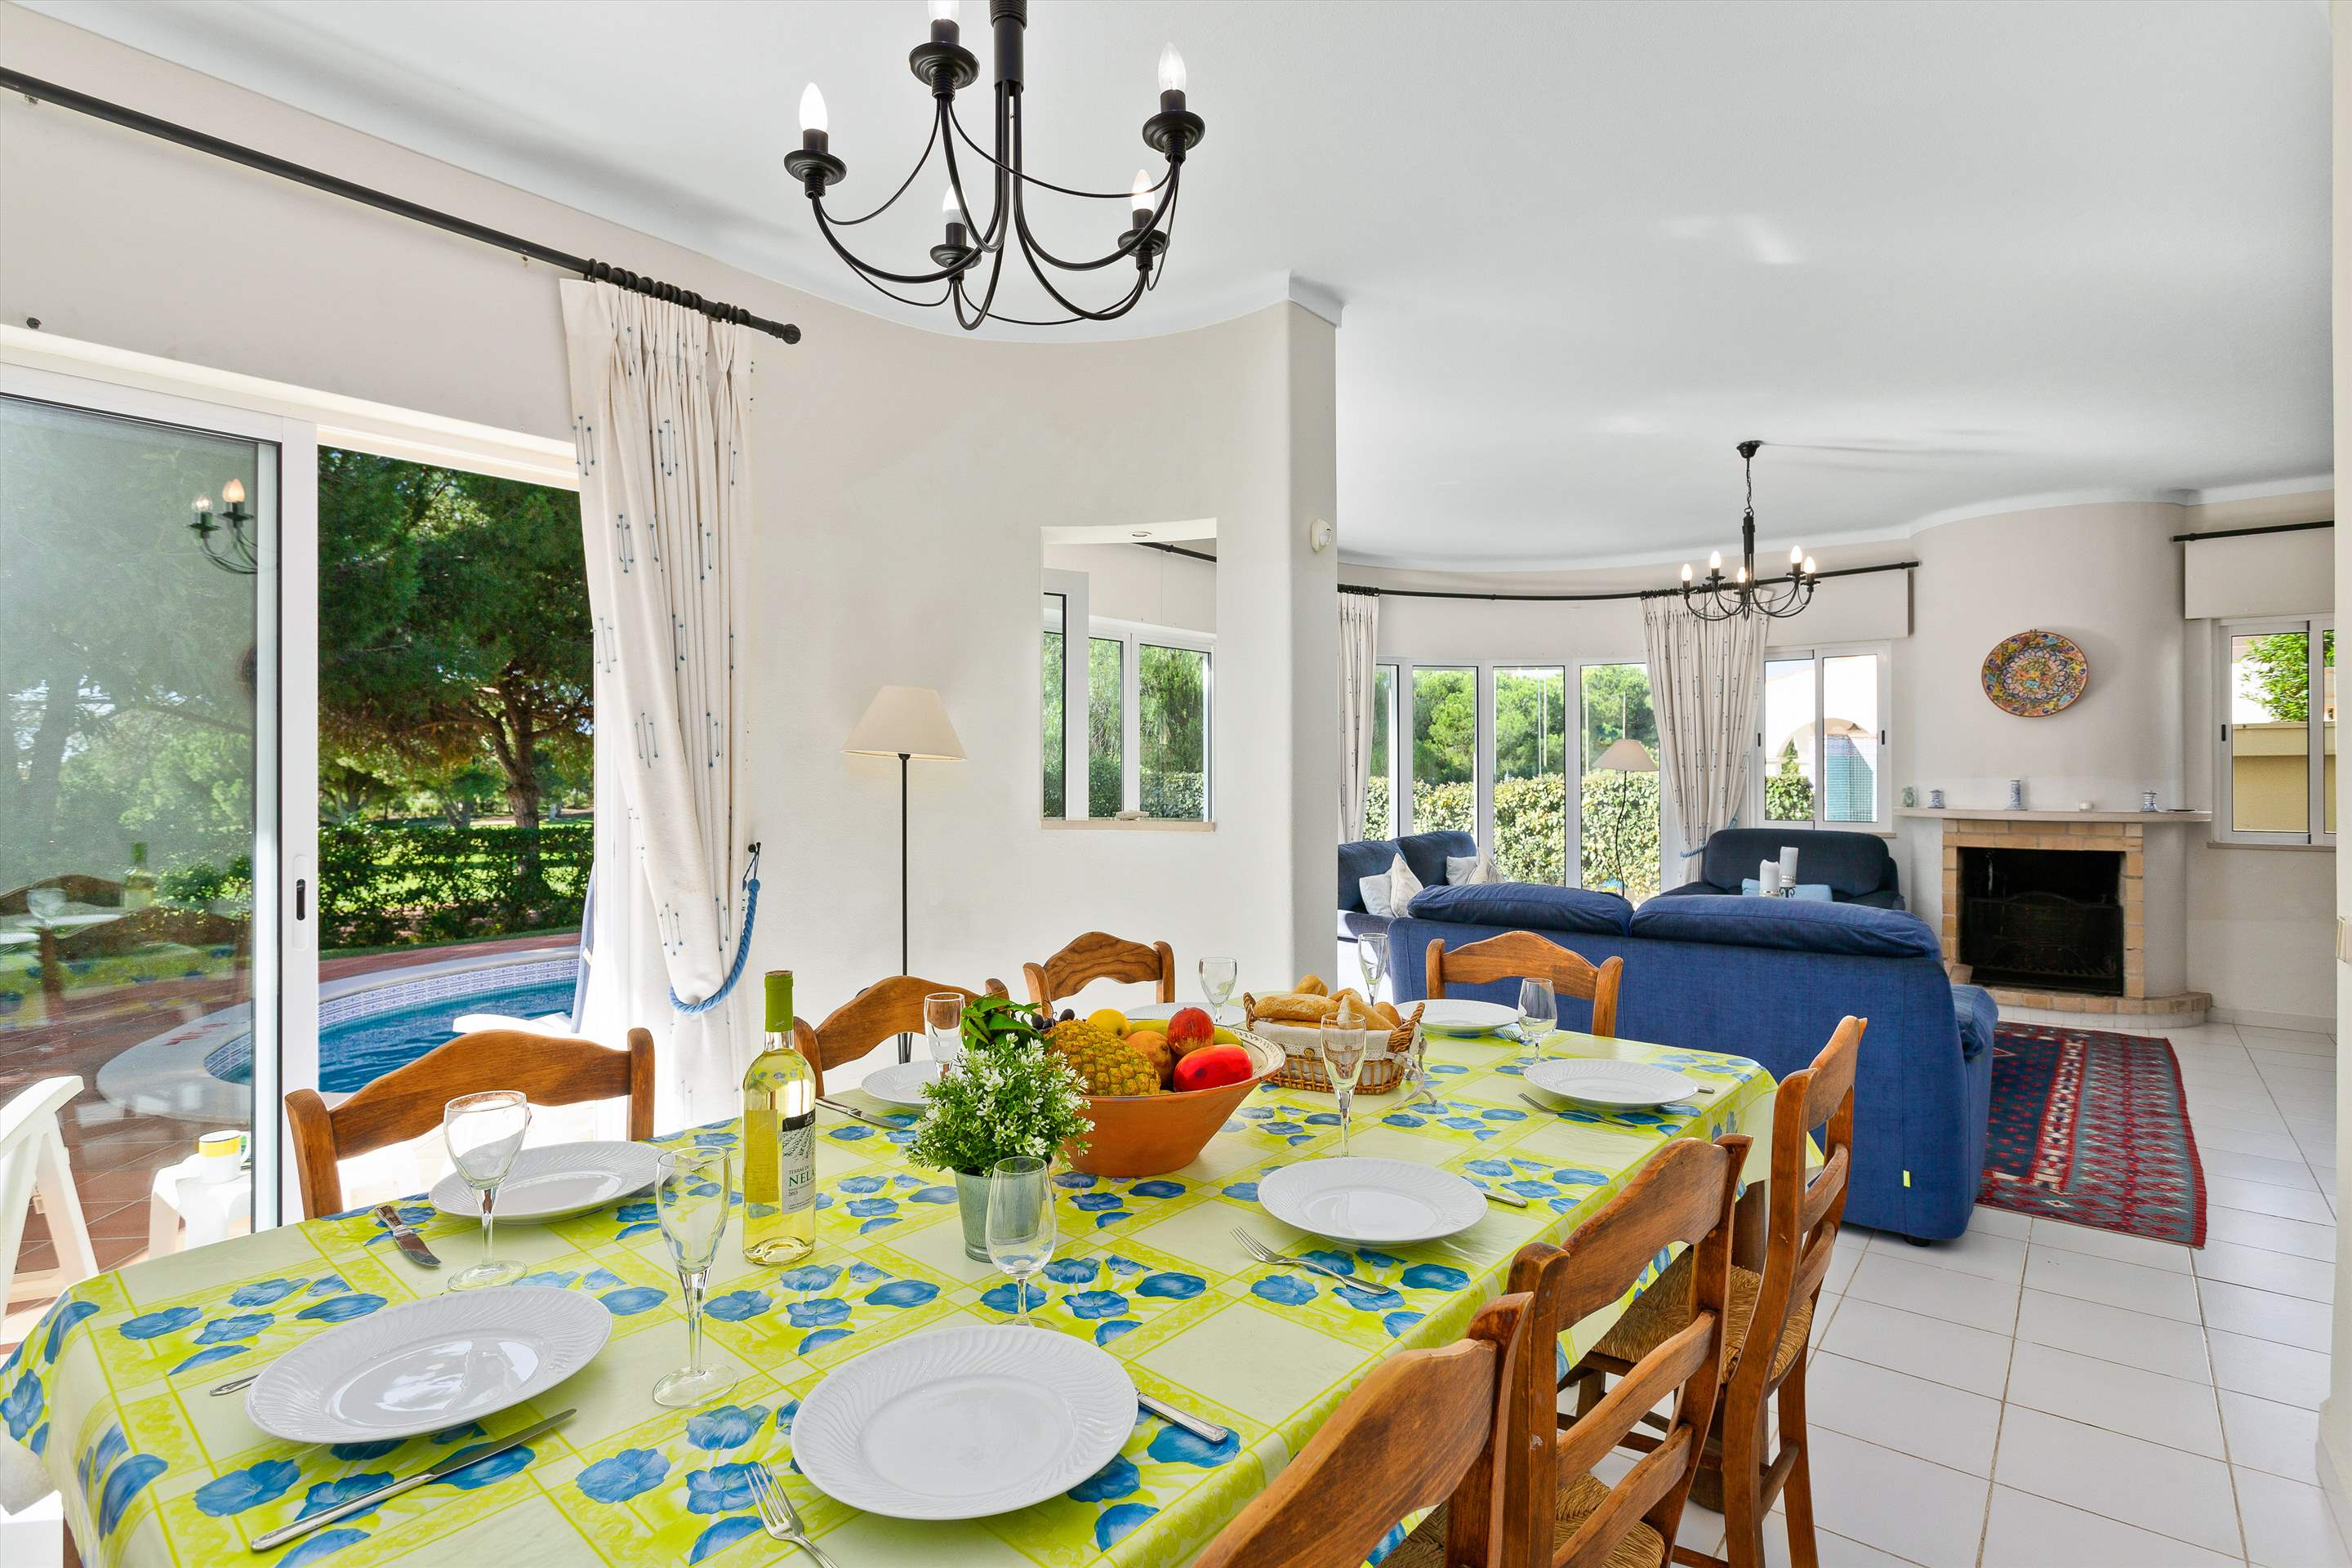 Villa Sarina, 4 bedroom villa in Vilamoura Area, Algarve Photo #5